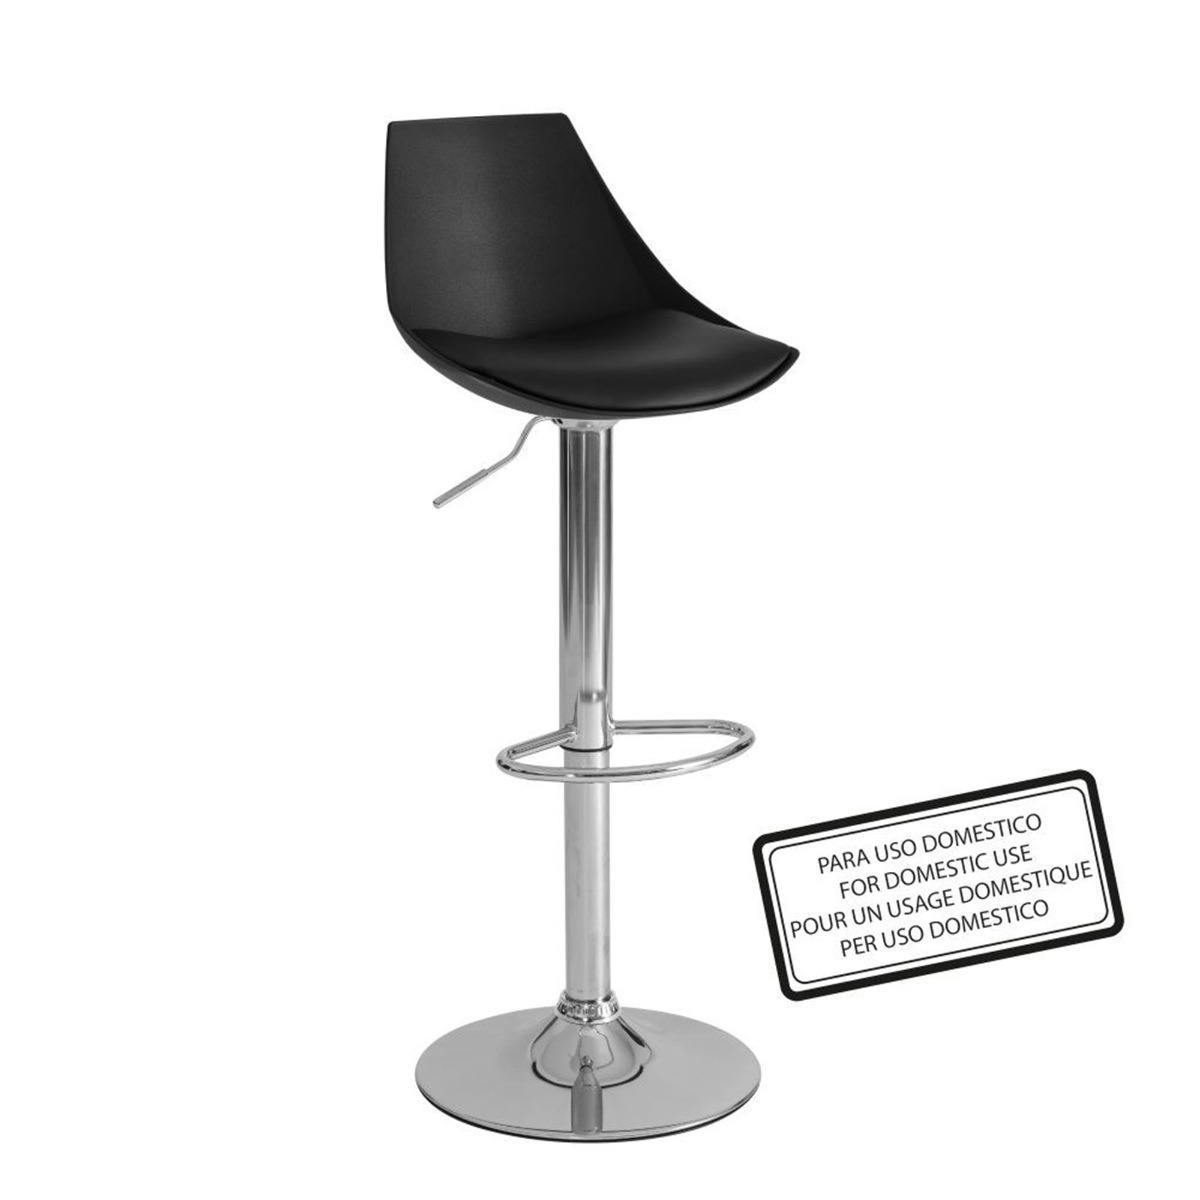 Silla alta para bar o banco de cocina color negro for Sillas altas para comedor